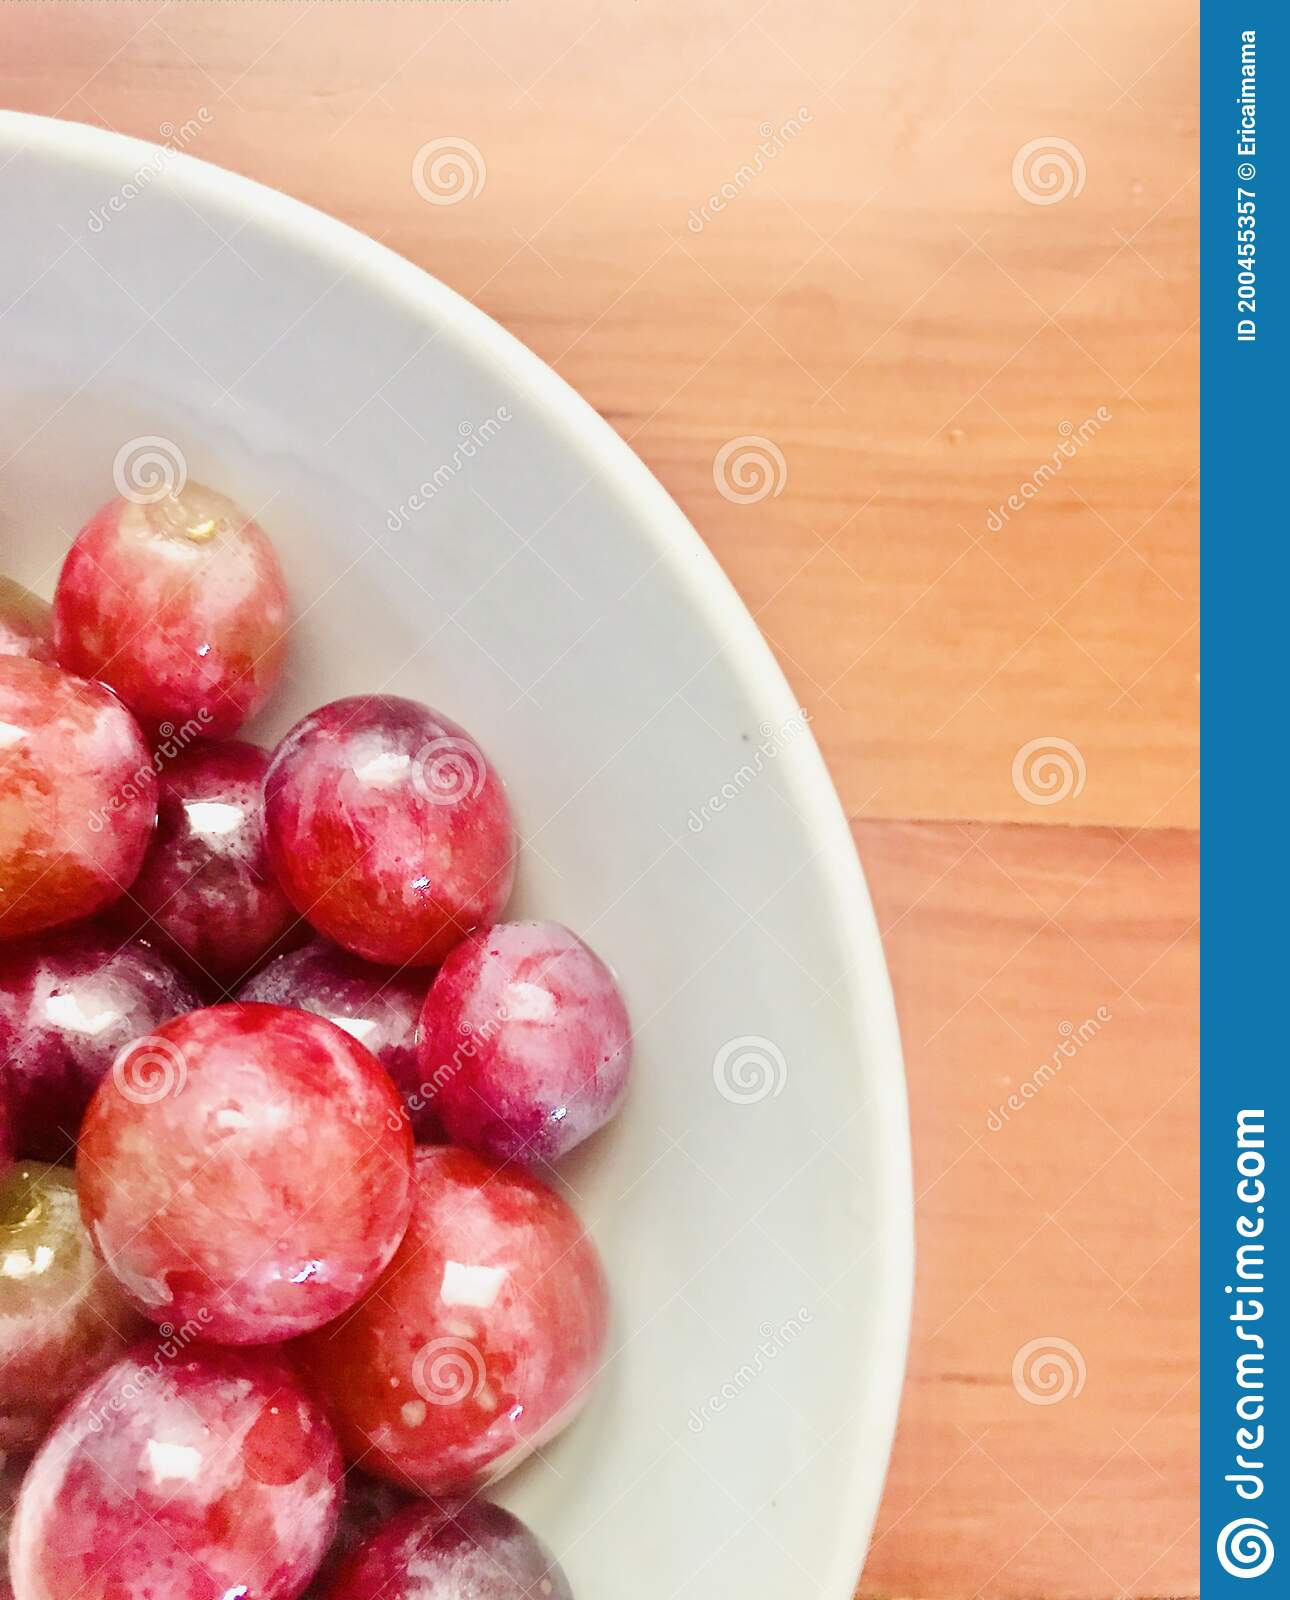 Clean Red Grapes In White Bowl Wooden Table Background Stock Image Image Of Gourmet Background 200455357